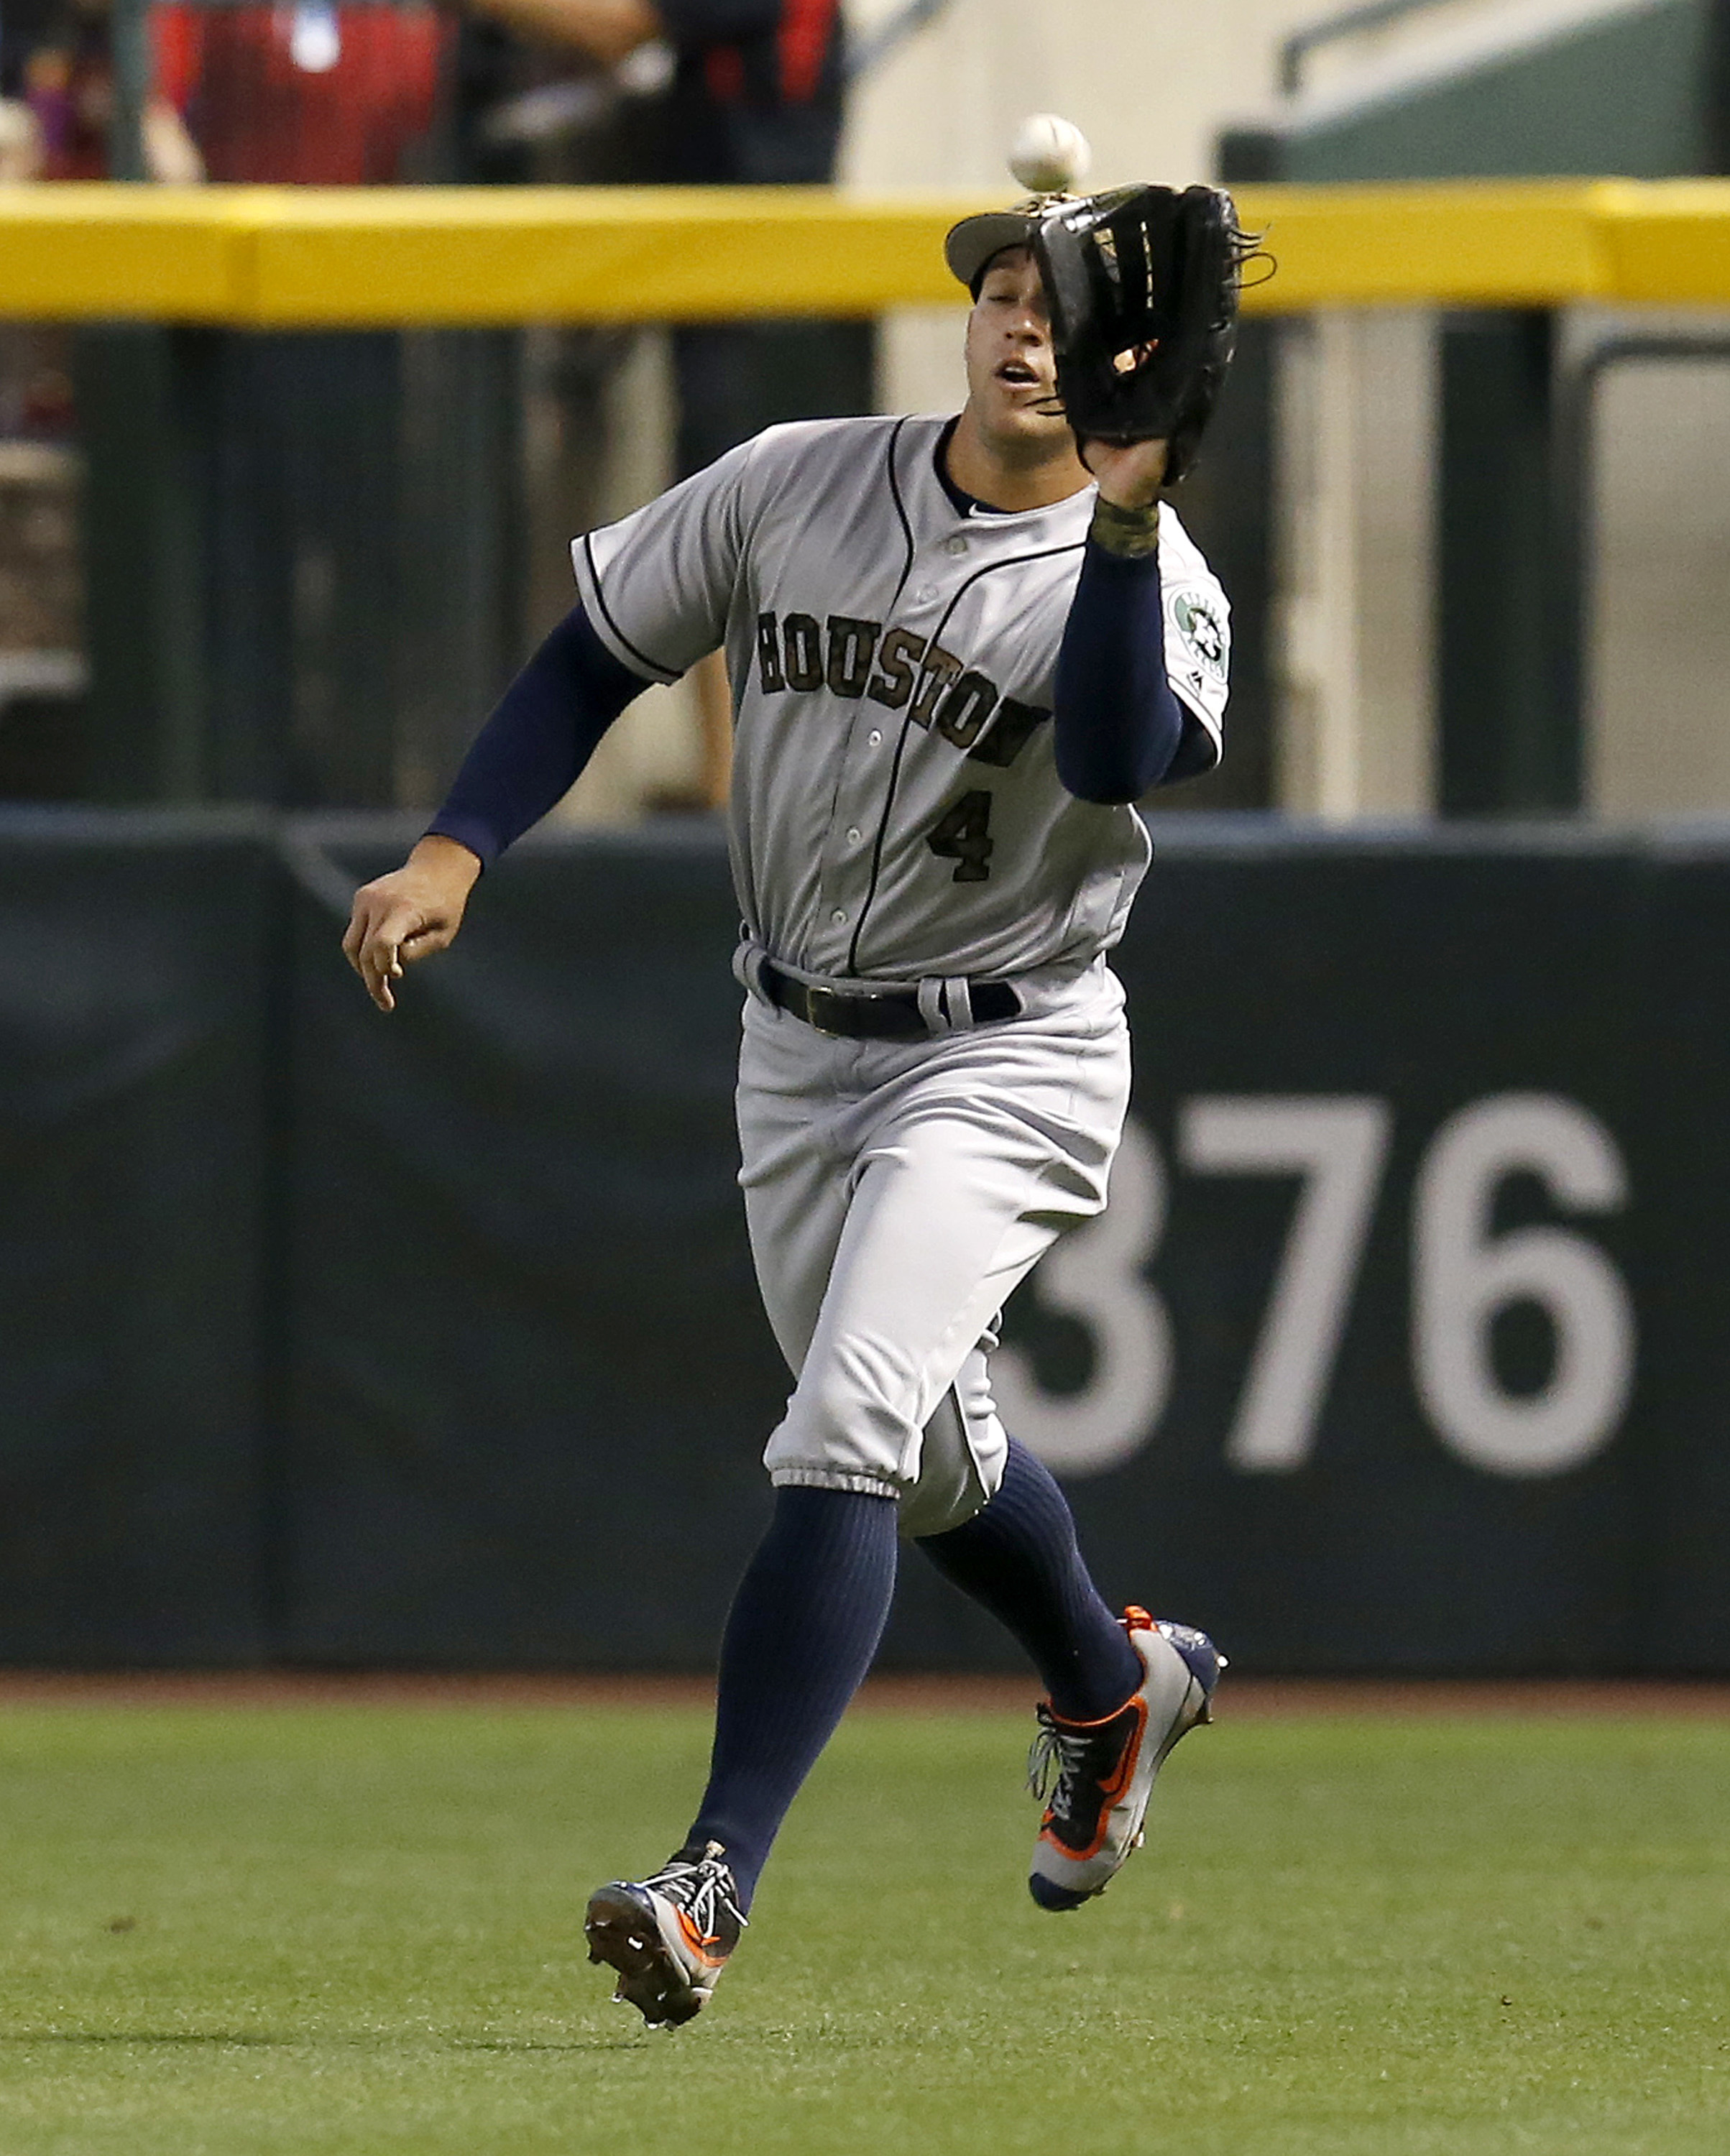 Houston Astros right fielder George Springer makes the running catch for an out against the Arizona Diamondbacks in the first inning during a baseball game, Monday, May 30, 2016, in Phoenix. (AP Photo/Rick Scuteri)